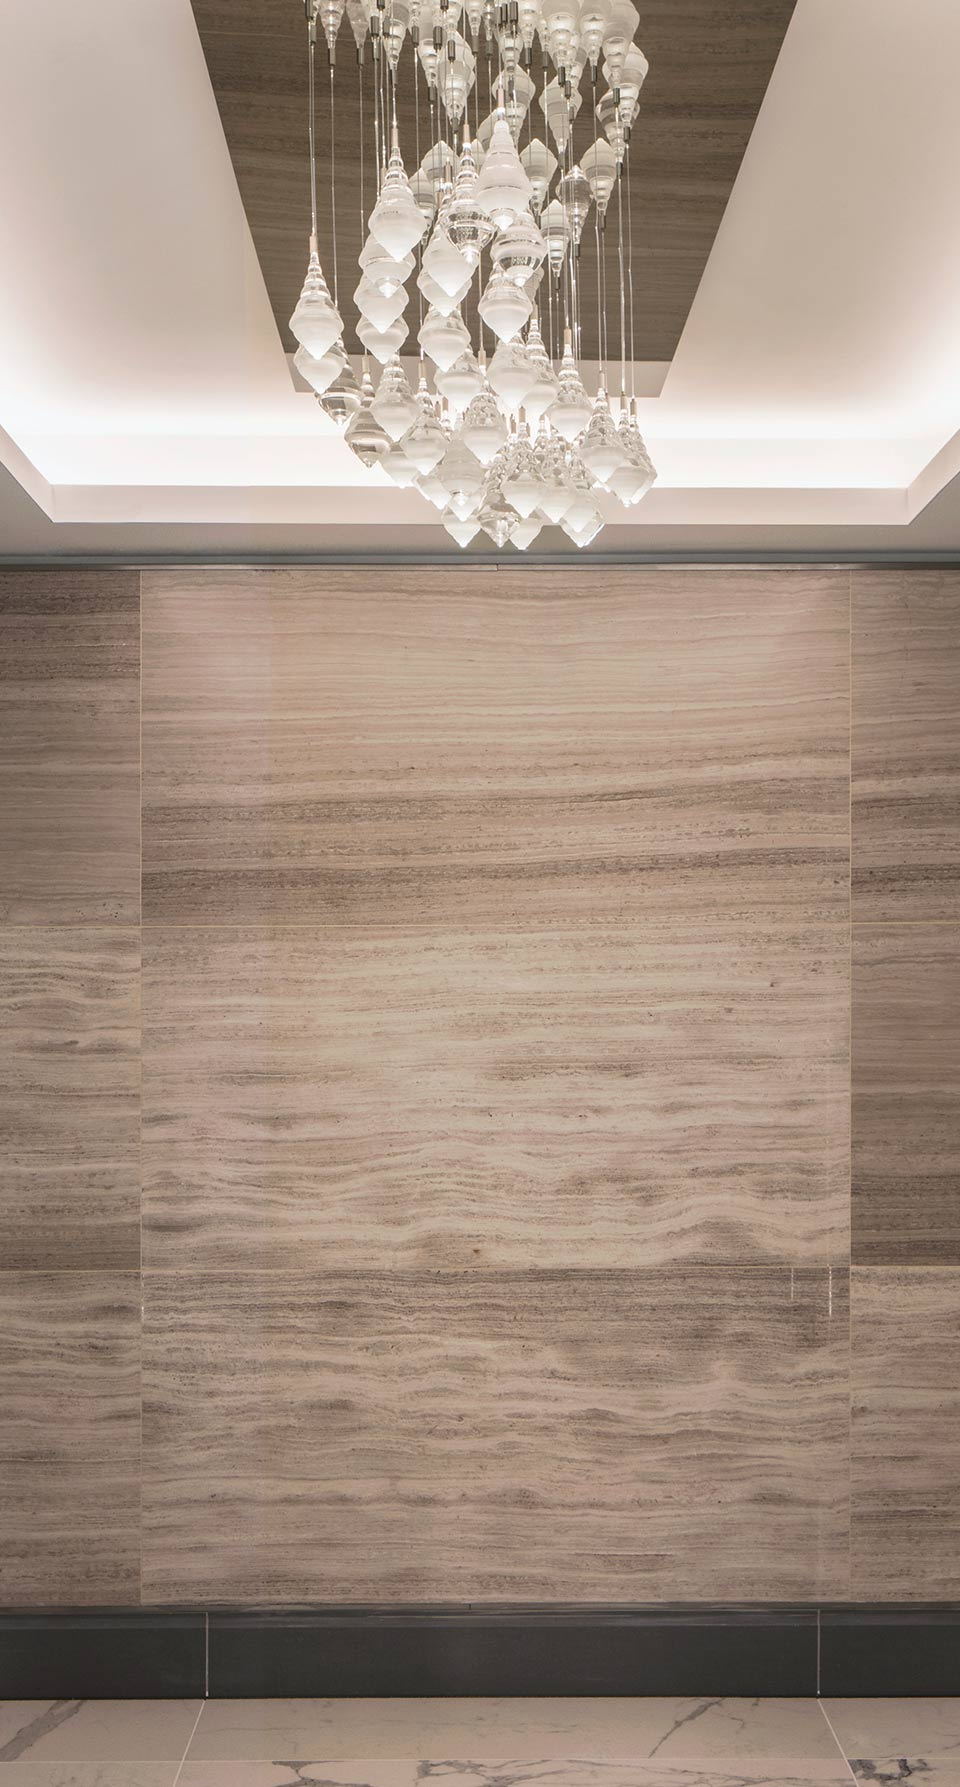 Bespoke Chandelier Luxury Spa Wave Composition Mirrored Rectangular Ceiling Plate Droplet Shaped Elements Southbank Place Spa Design Nulty Bespoke